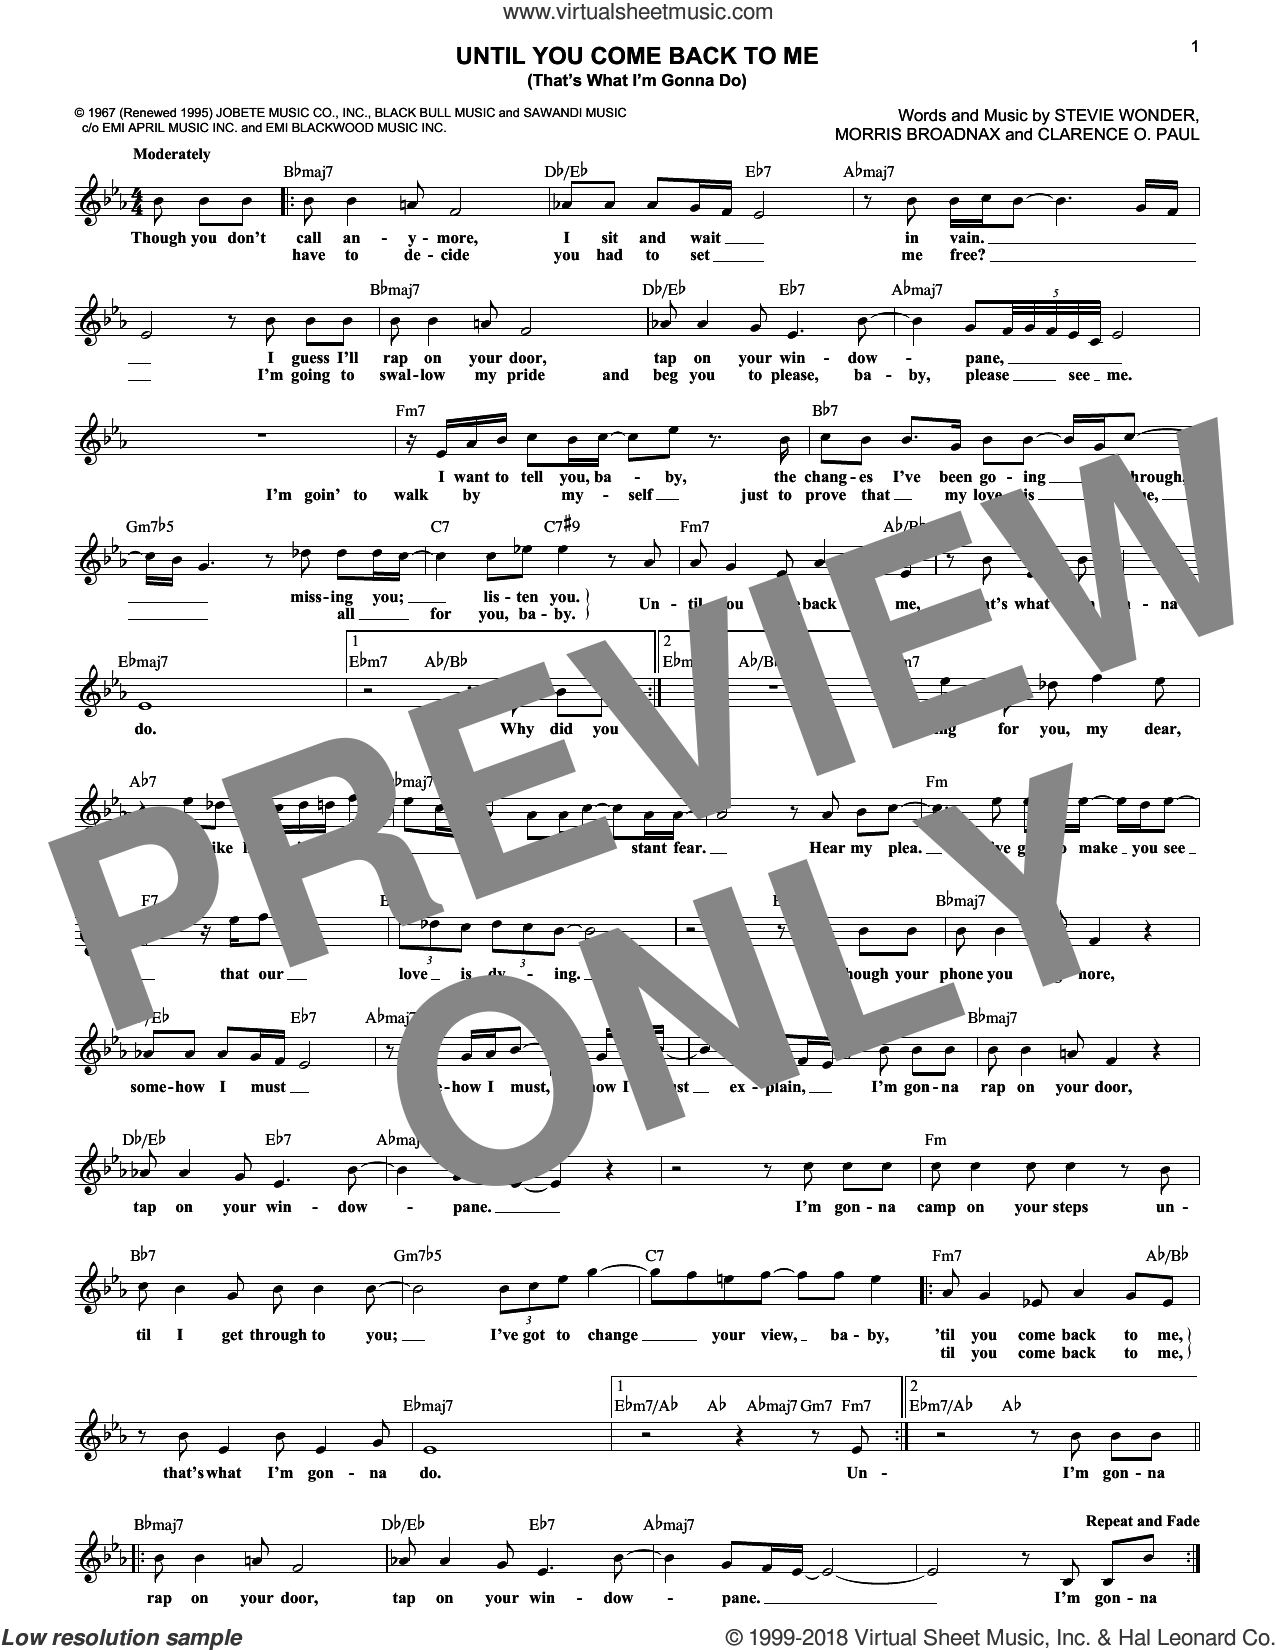 Until You Come Back To Me (That's What I'm Gonna Do) sheet music for voice and other instruments (fake book) by Aretha Franklin, Clarence O. Paul, Morris Broadnax and Stevie Wonder, intermediate skill level